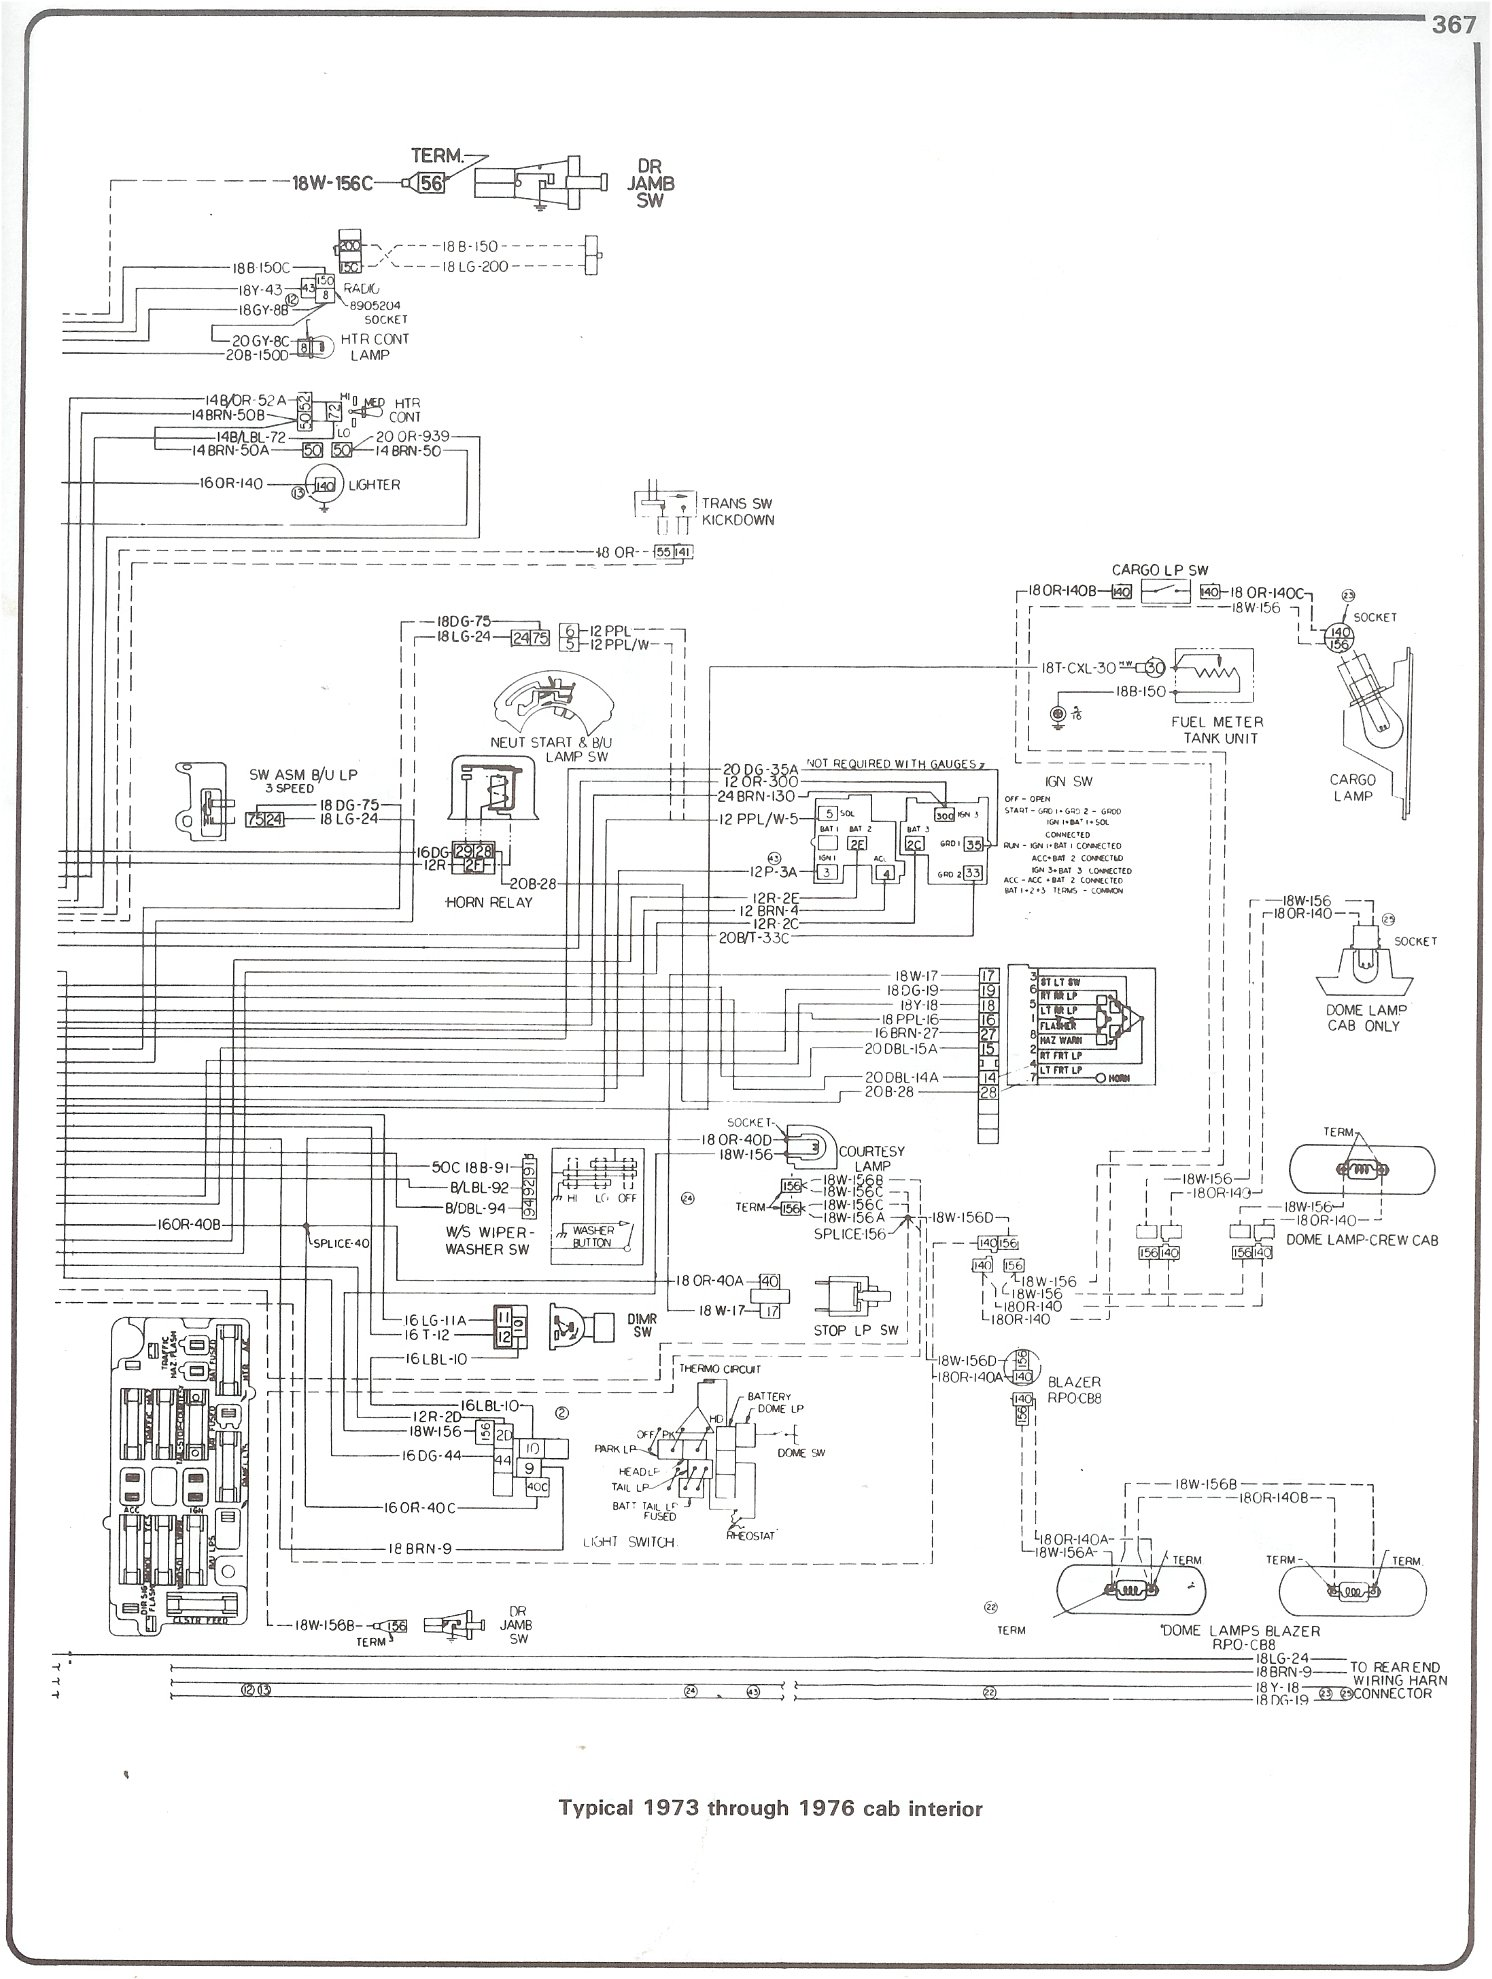 Plete 7387 Wiring Diagrams. 7376 Cab Interior. GM. 2004 GMC Wiring Diagrams Free Horn At Scoala.co